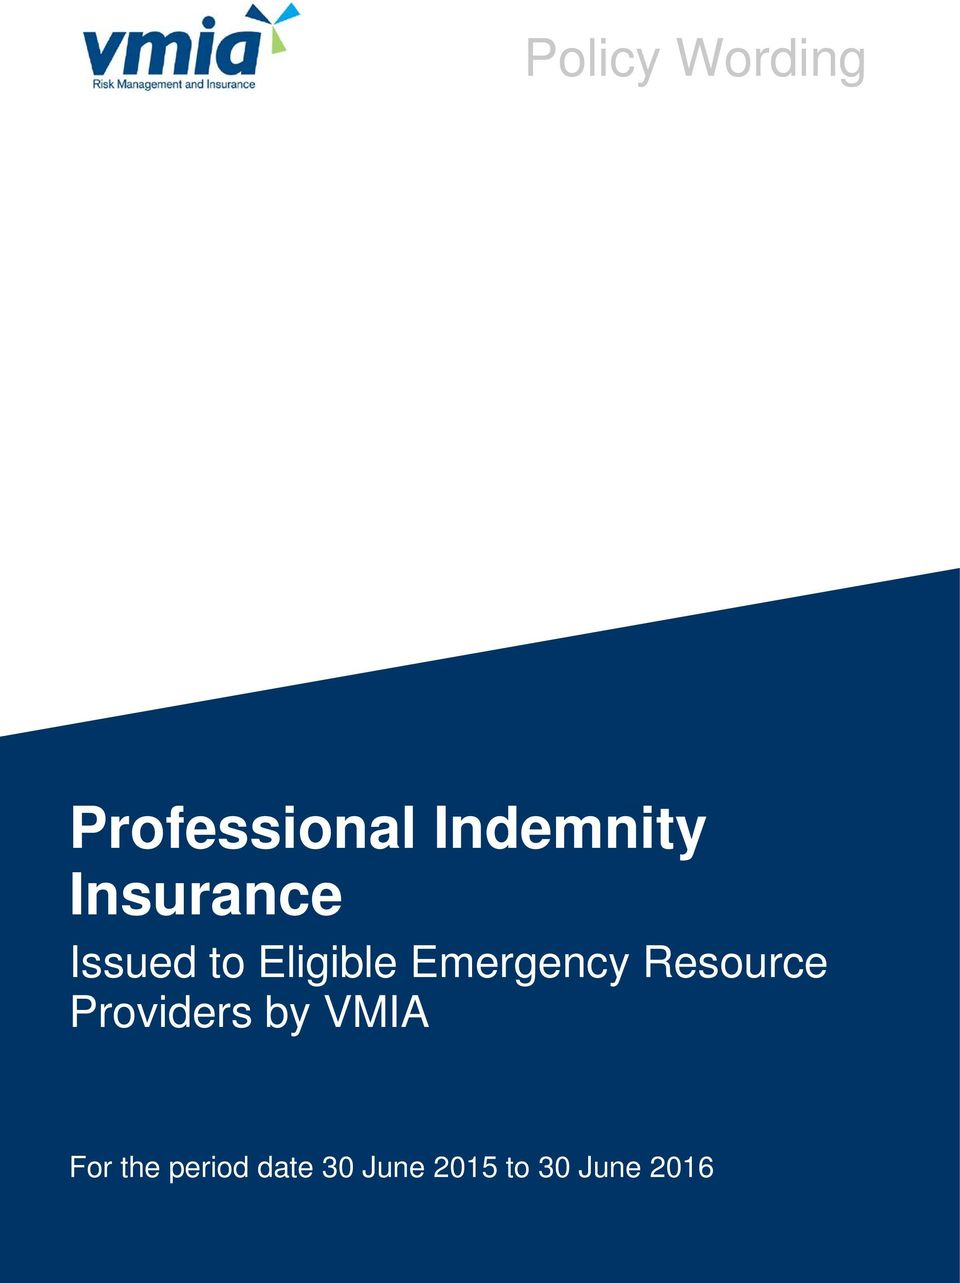 Emergency Resource Providers by VMIA